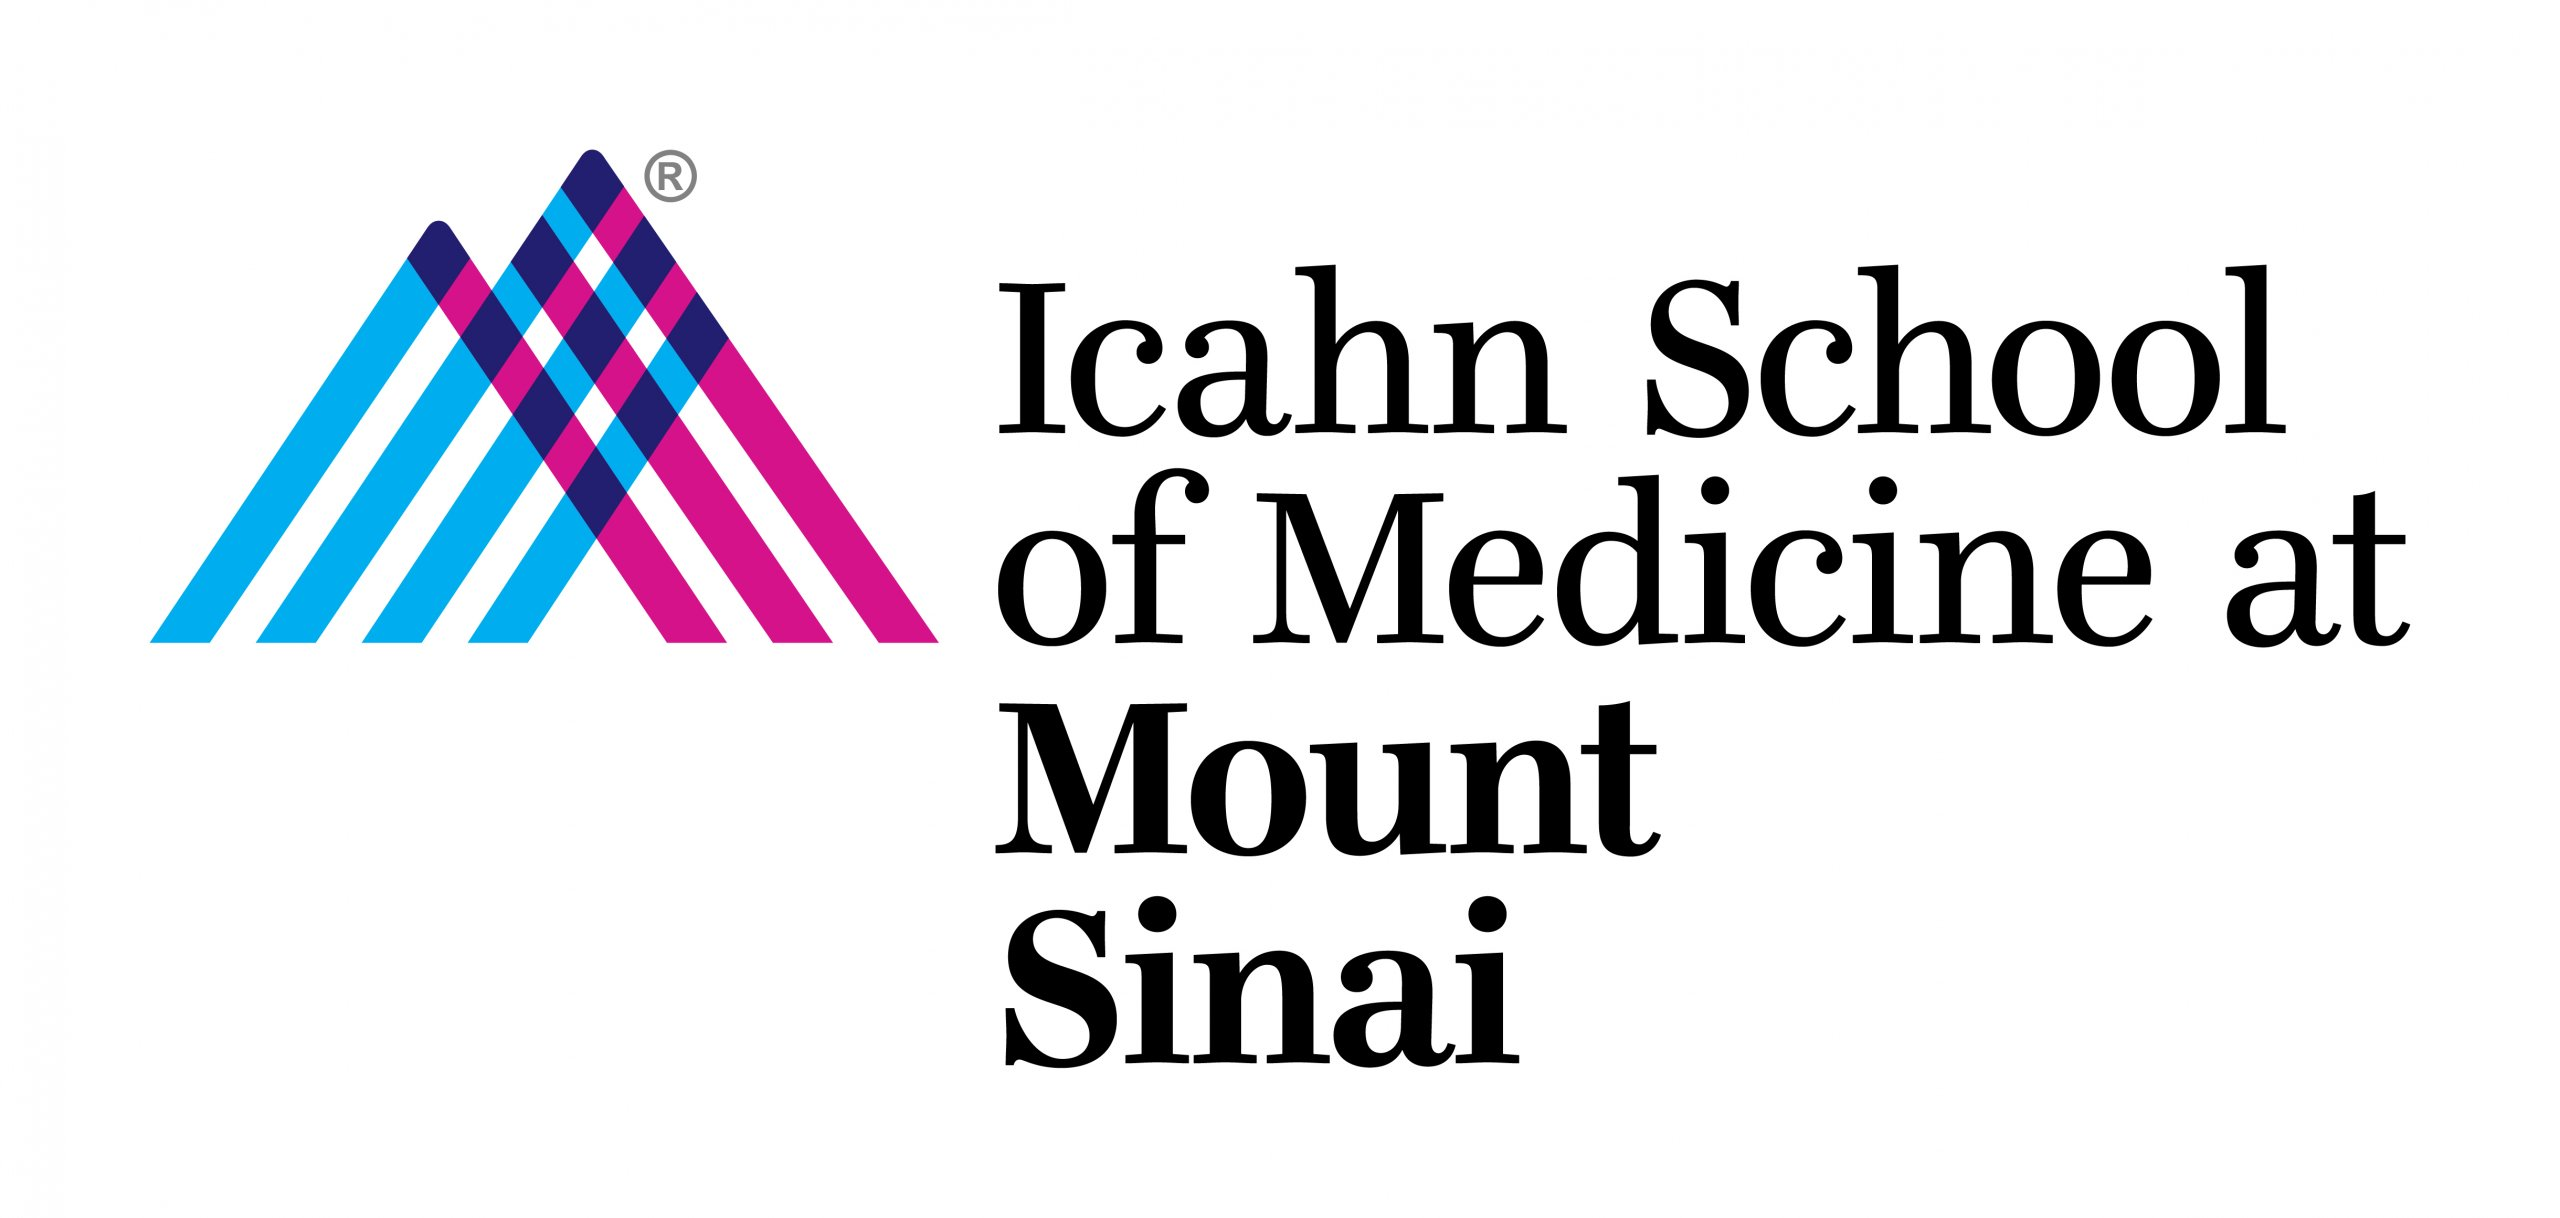 Icahn School of Medicine at Mount Sinai logo.